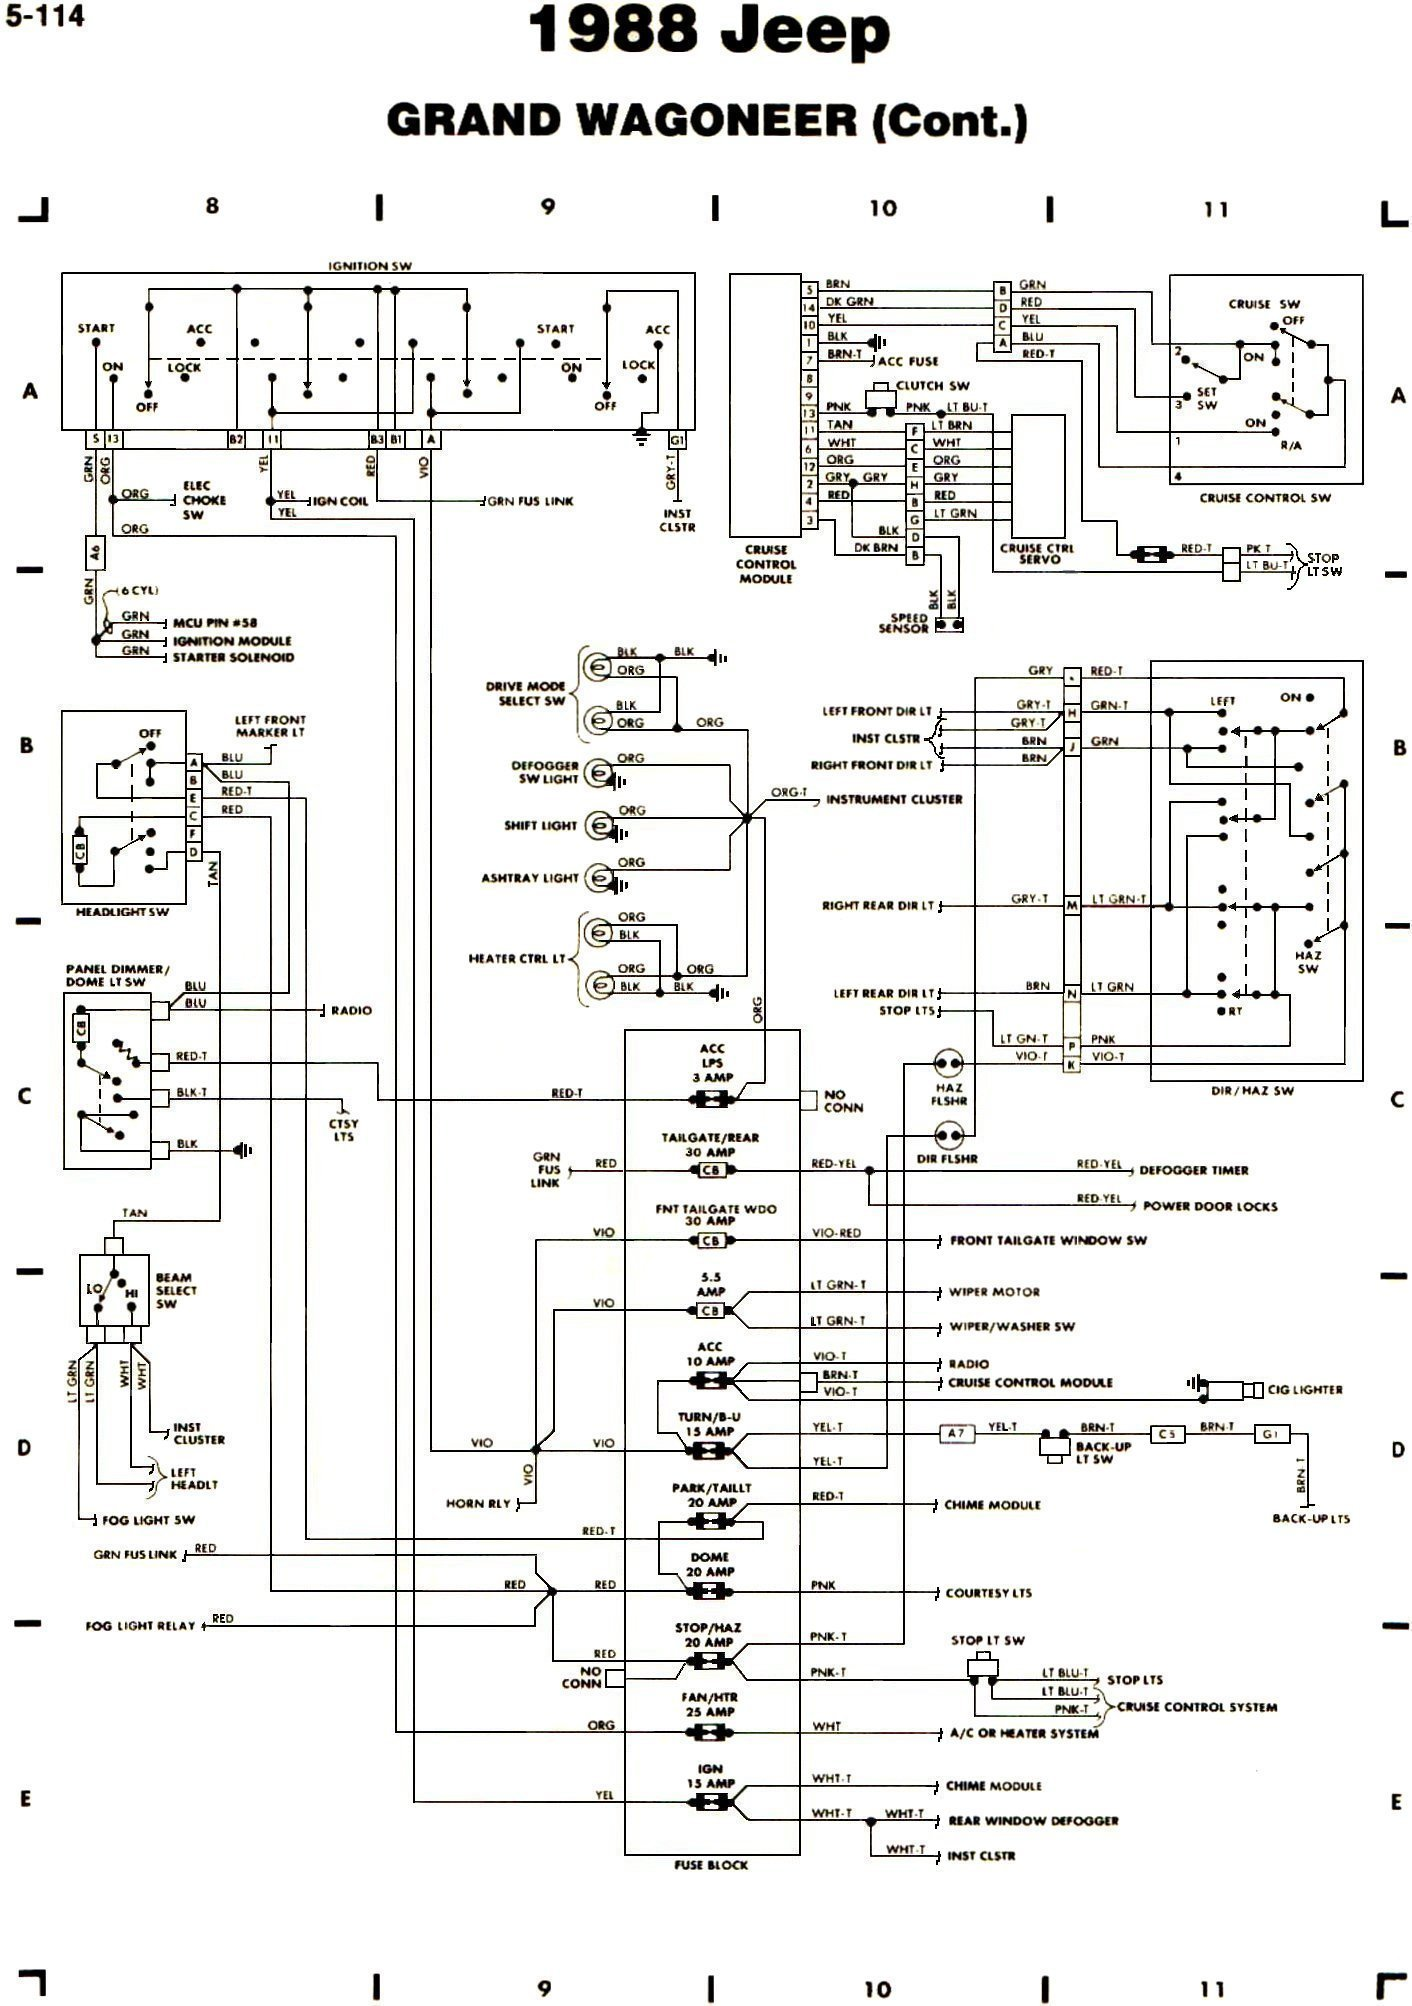 freightliner wiring fuse box diagram jRoIVIr 2007 freightliner fuse box diagram freightliner wiring diagram 2007 Freightliner Wiring Diagram at n-0.co